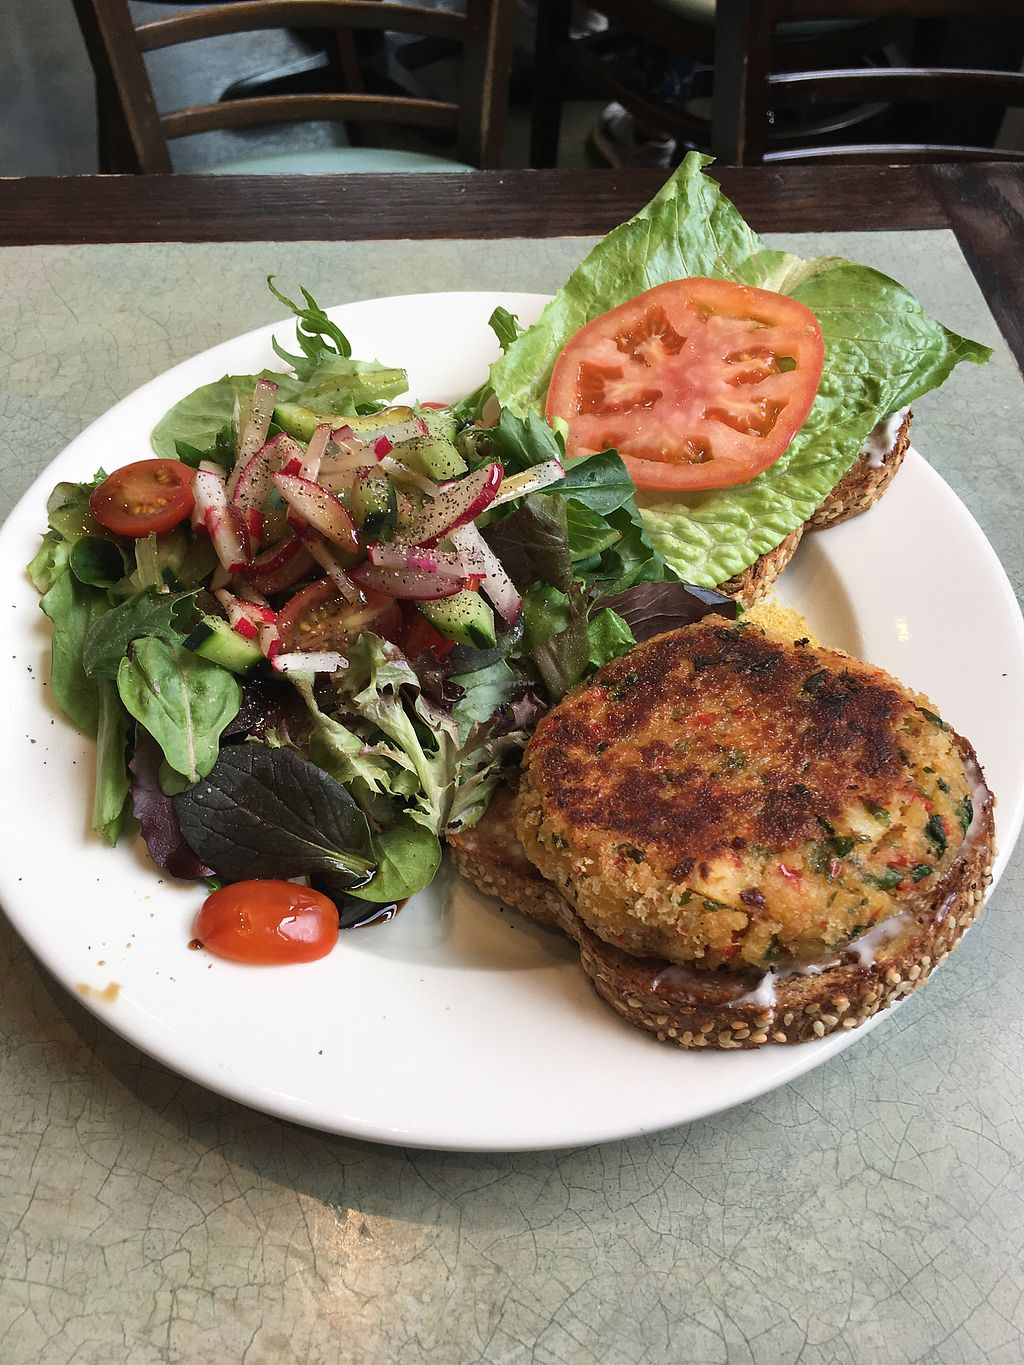 "Photo of JivamukTea Cafe  by <a href=""/members/profile/evanding"">evanding</a> <br/>vegan crab cake <br/> April 1, 2018  - <a href='/contact/abuse/image/10162/379541'>Report</a>"